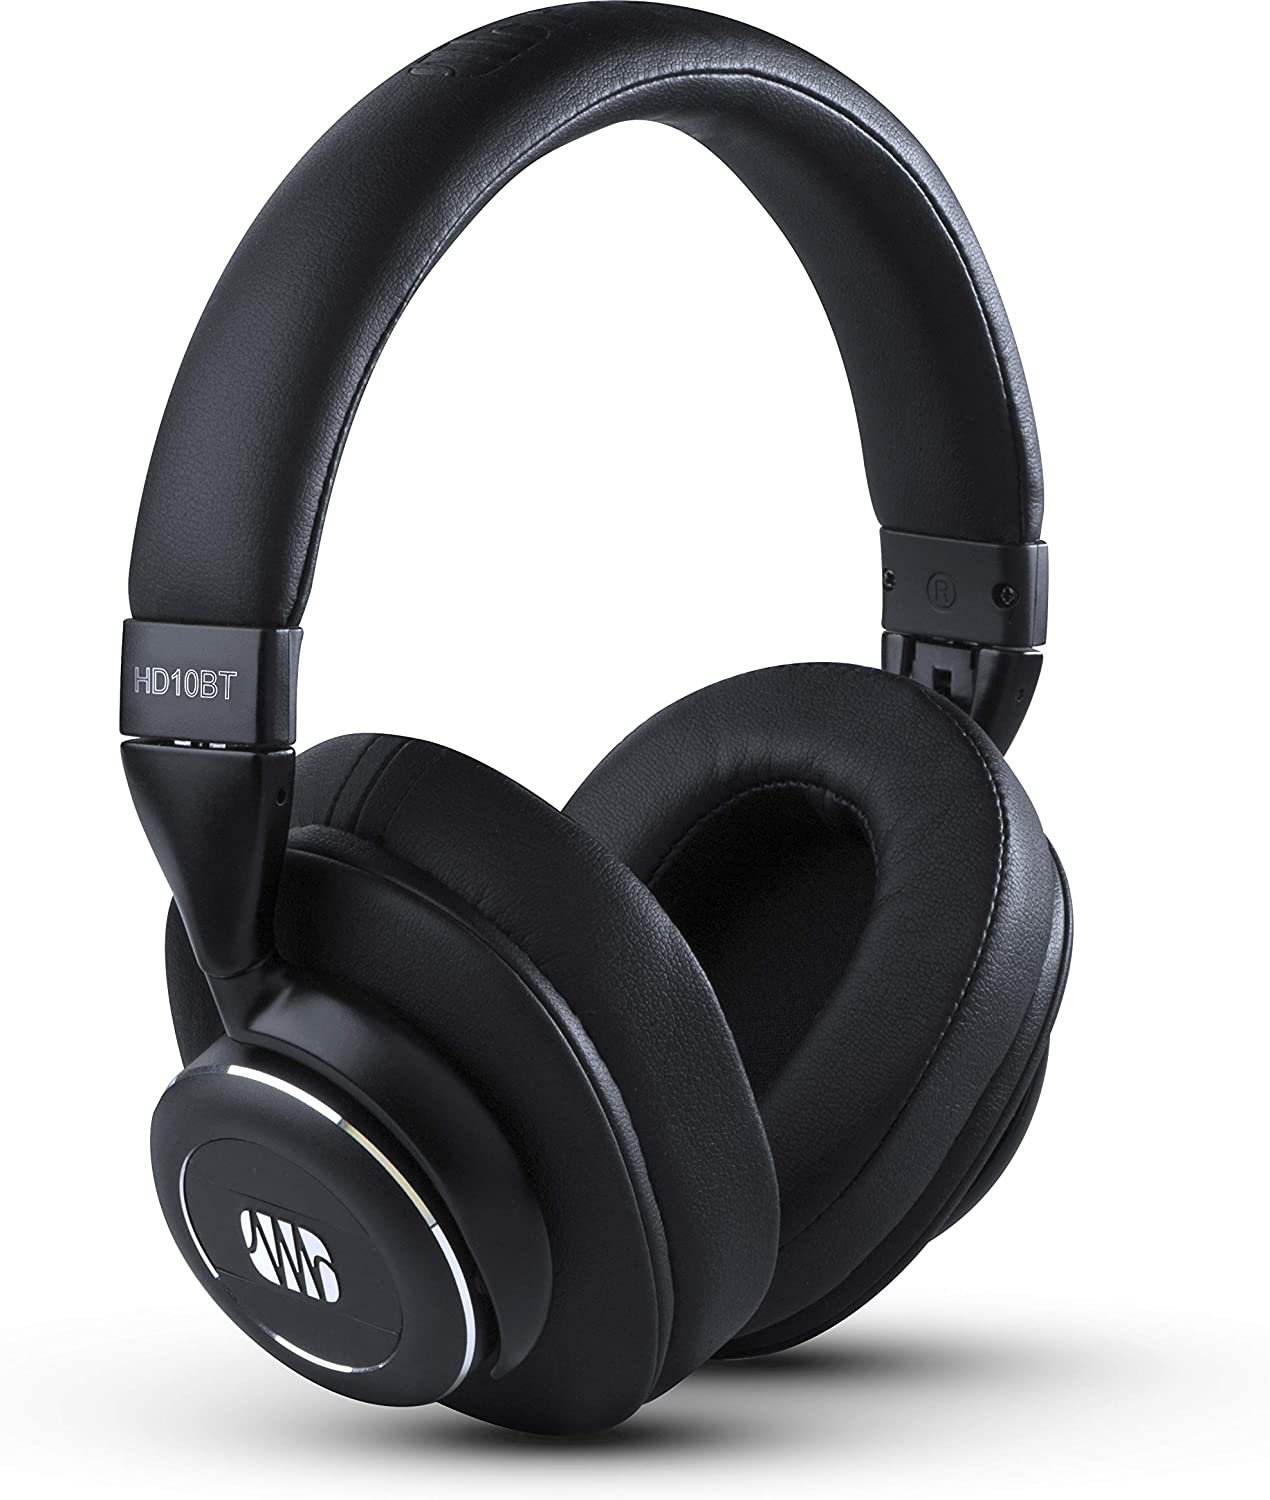 Eris HD10BT Professional Headphones with Bluetooth and Noise Canceling